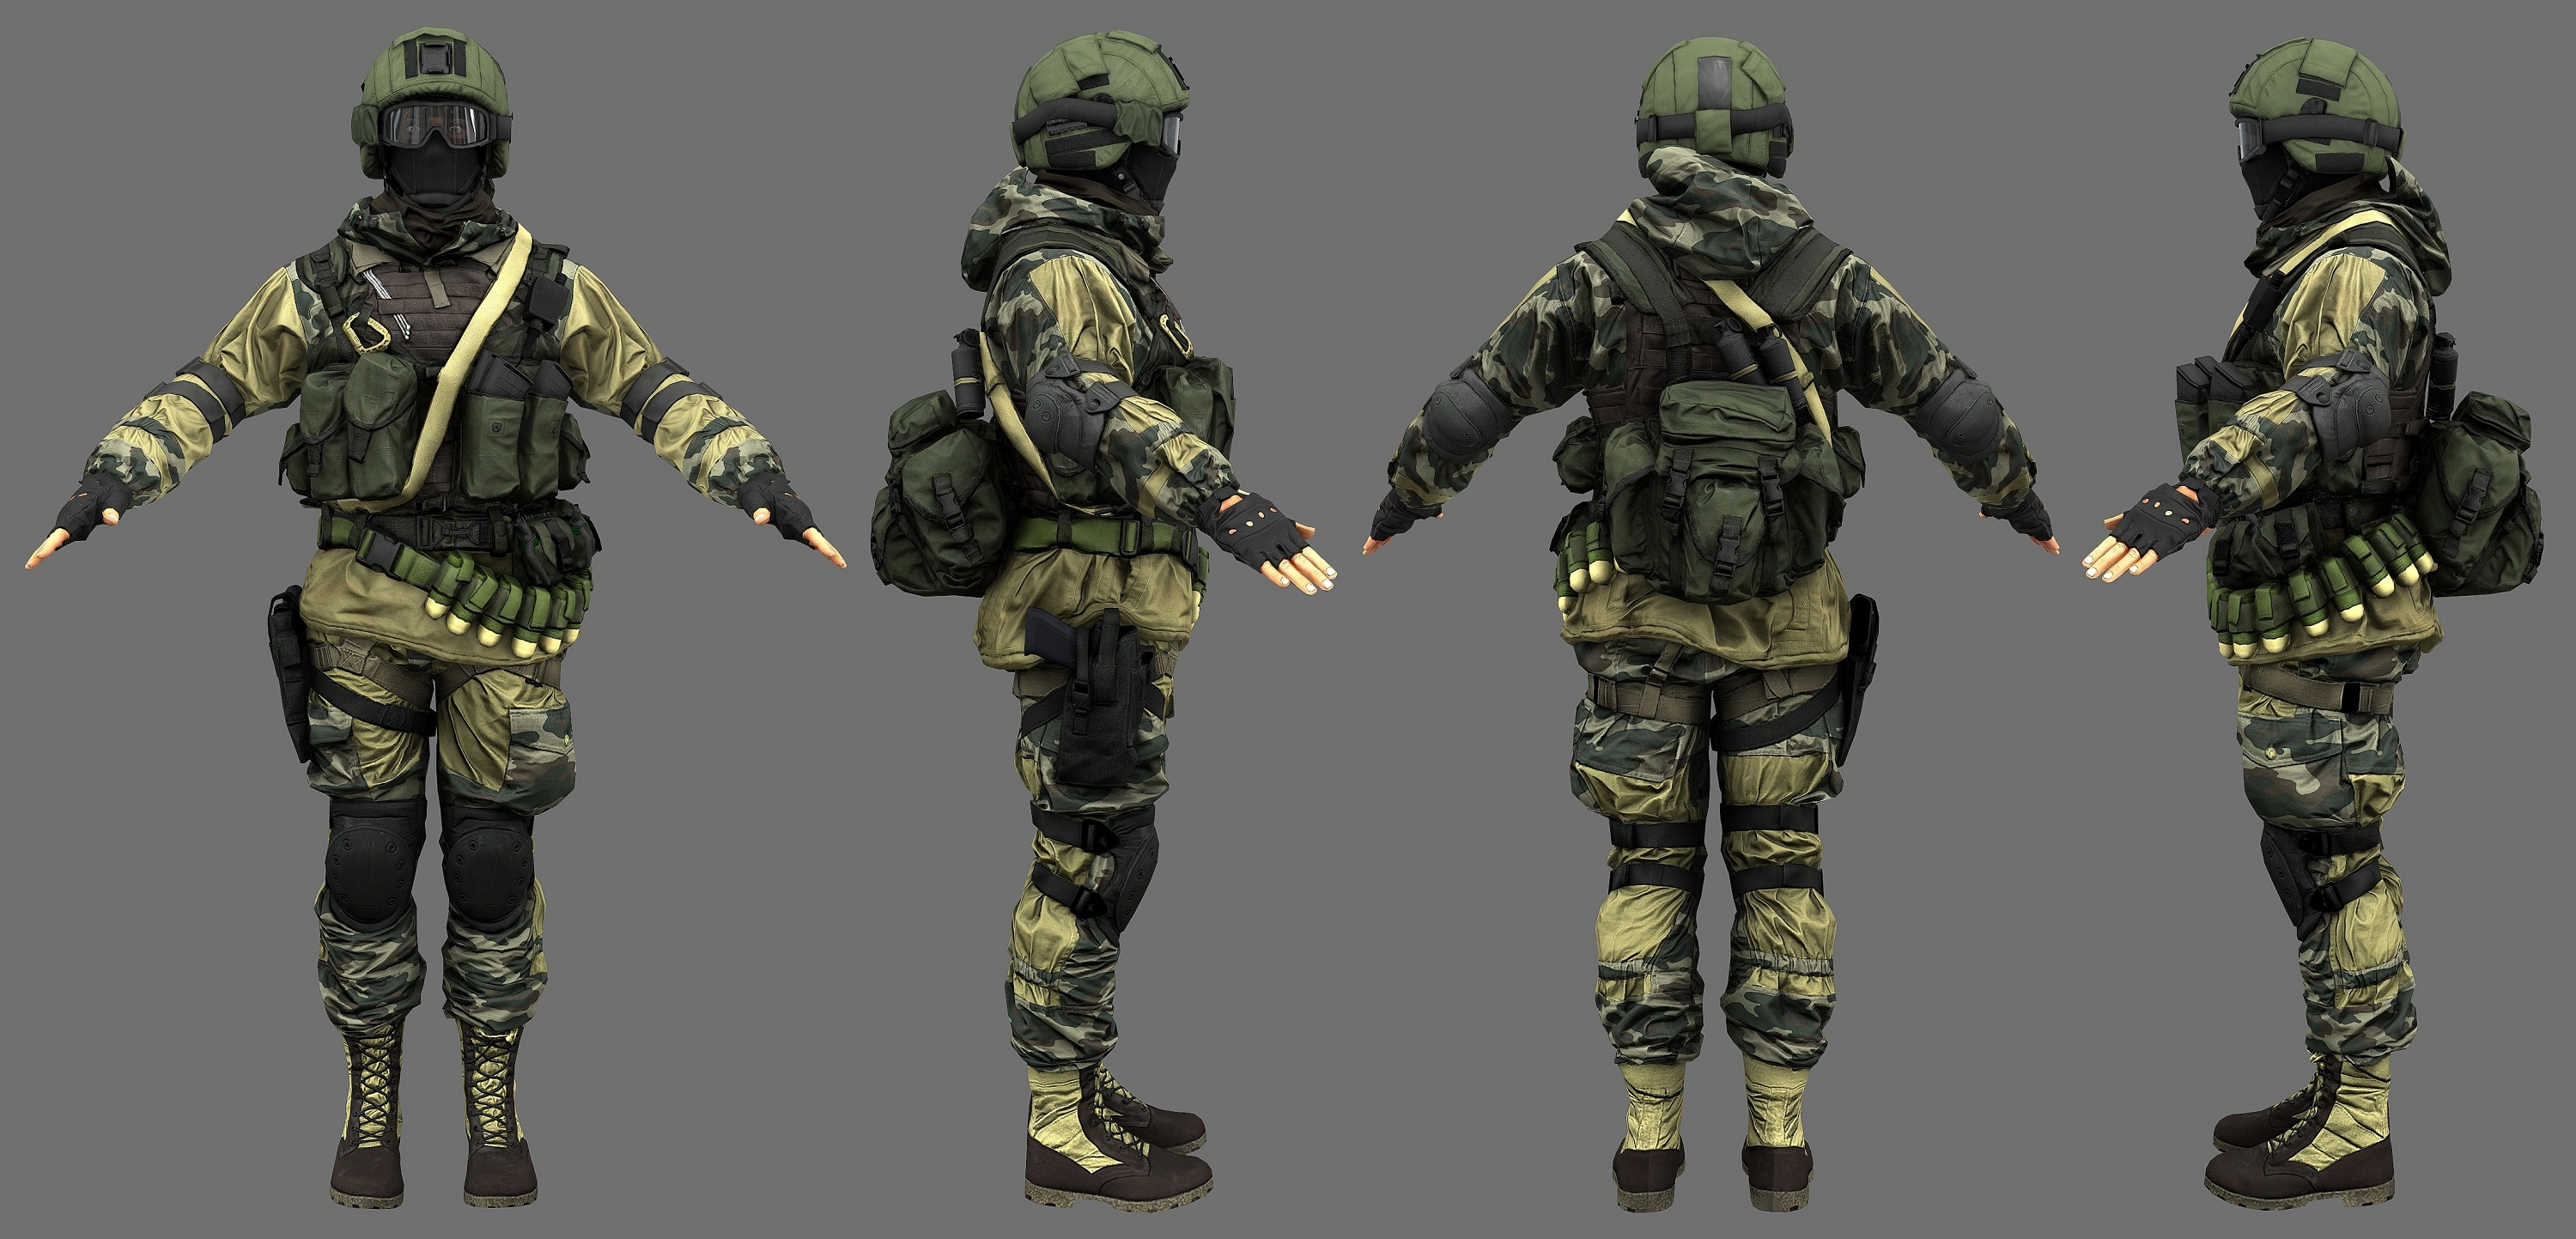 Mw3 3d Wallpapers What Is The Russian Assault Class Character S Model Gear